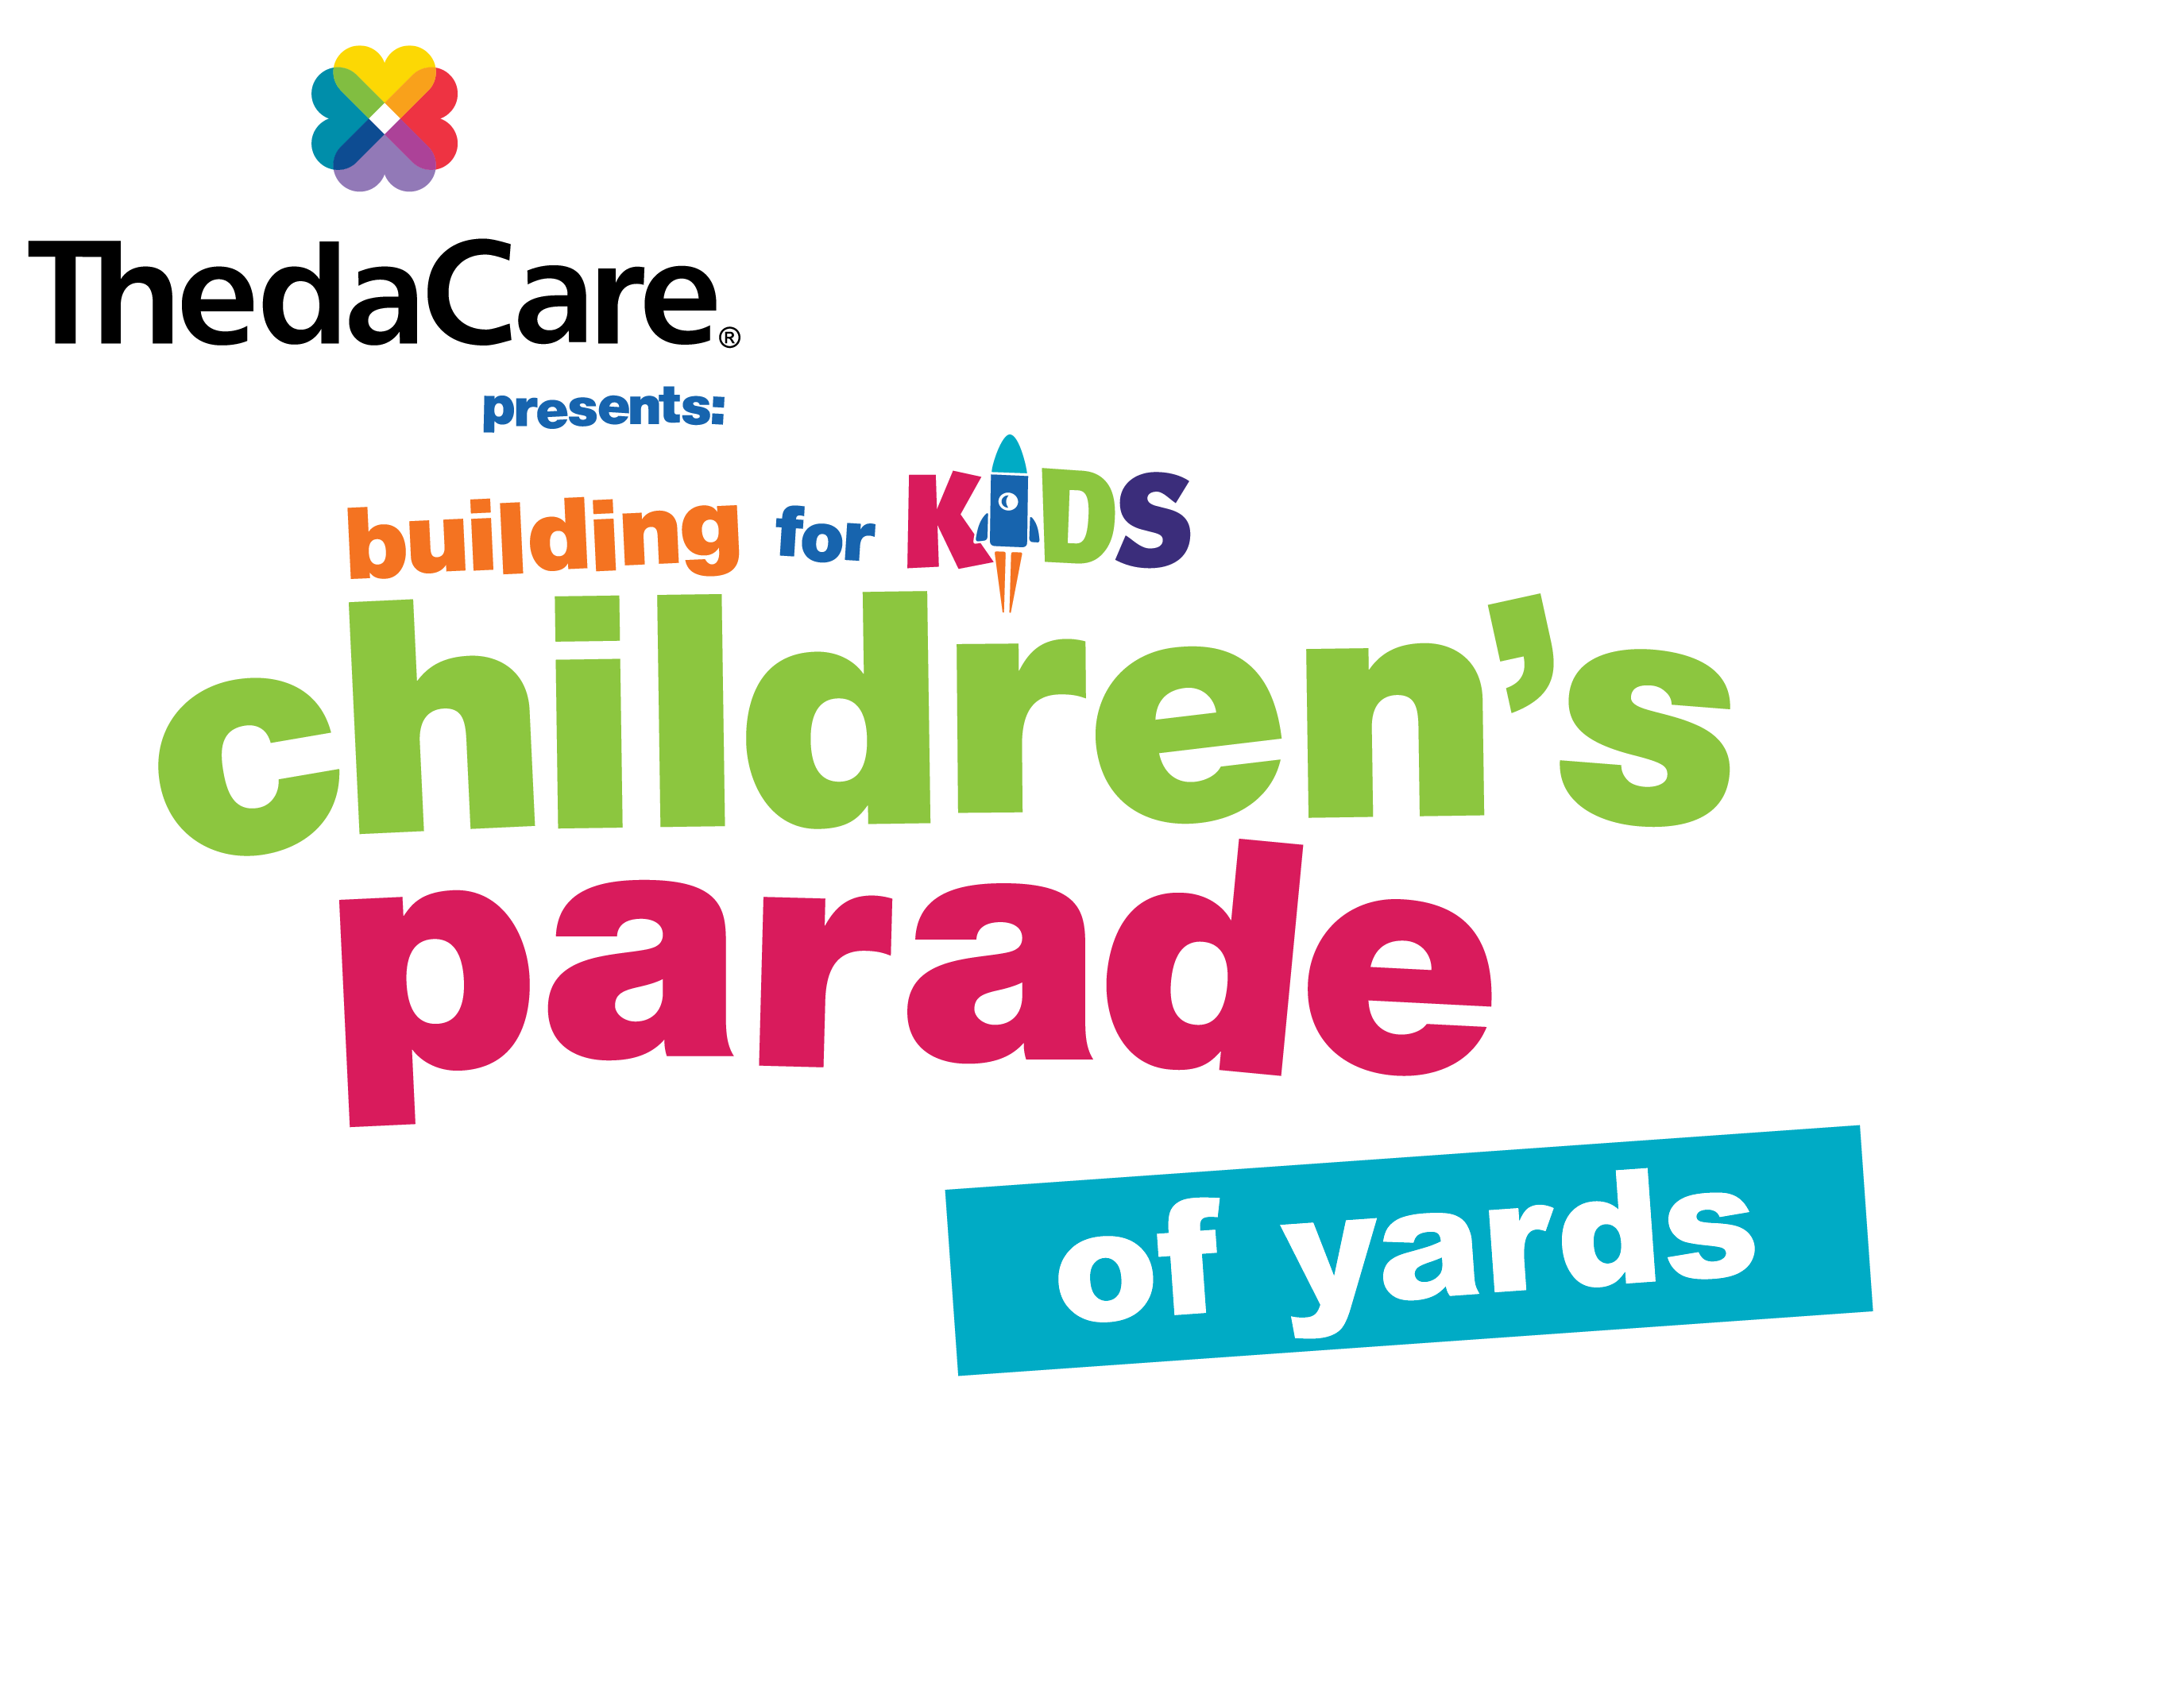 Join us for the Children's Parade of Yards!